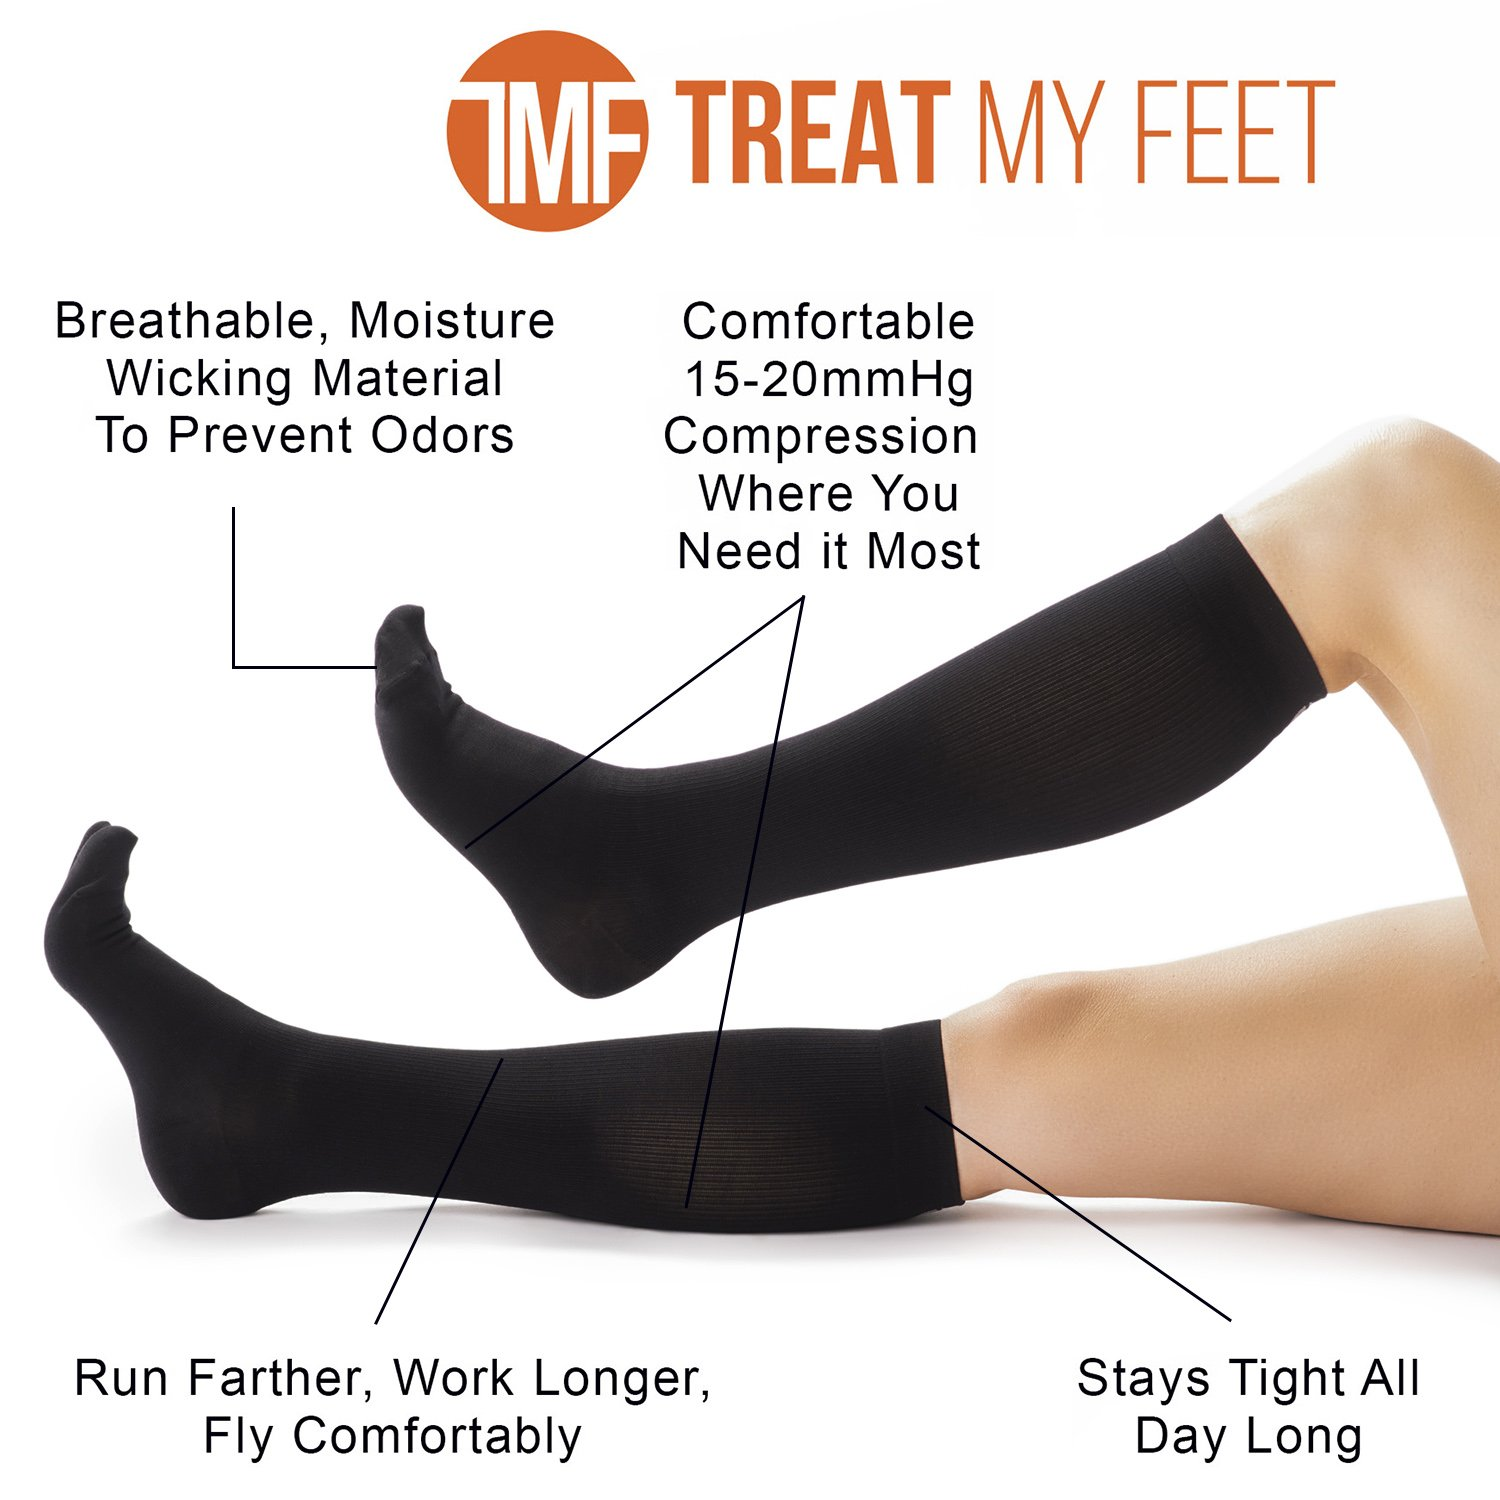 5c199600b0 Amazon.com: Compression Socks for Women & Men Knee-high Compression  Stockings Relieve Calf, Leg & Foot Pain - Graduated to Boost Circulation &  Reduce Edema ...